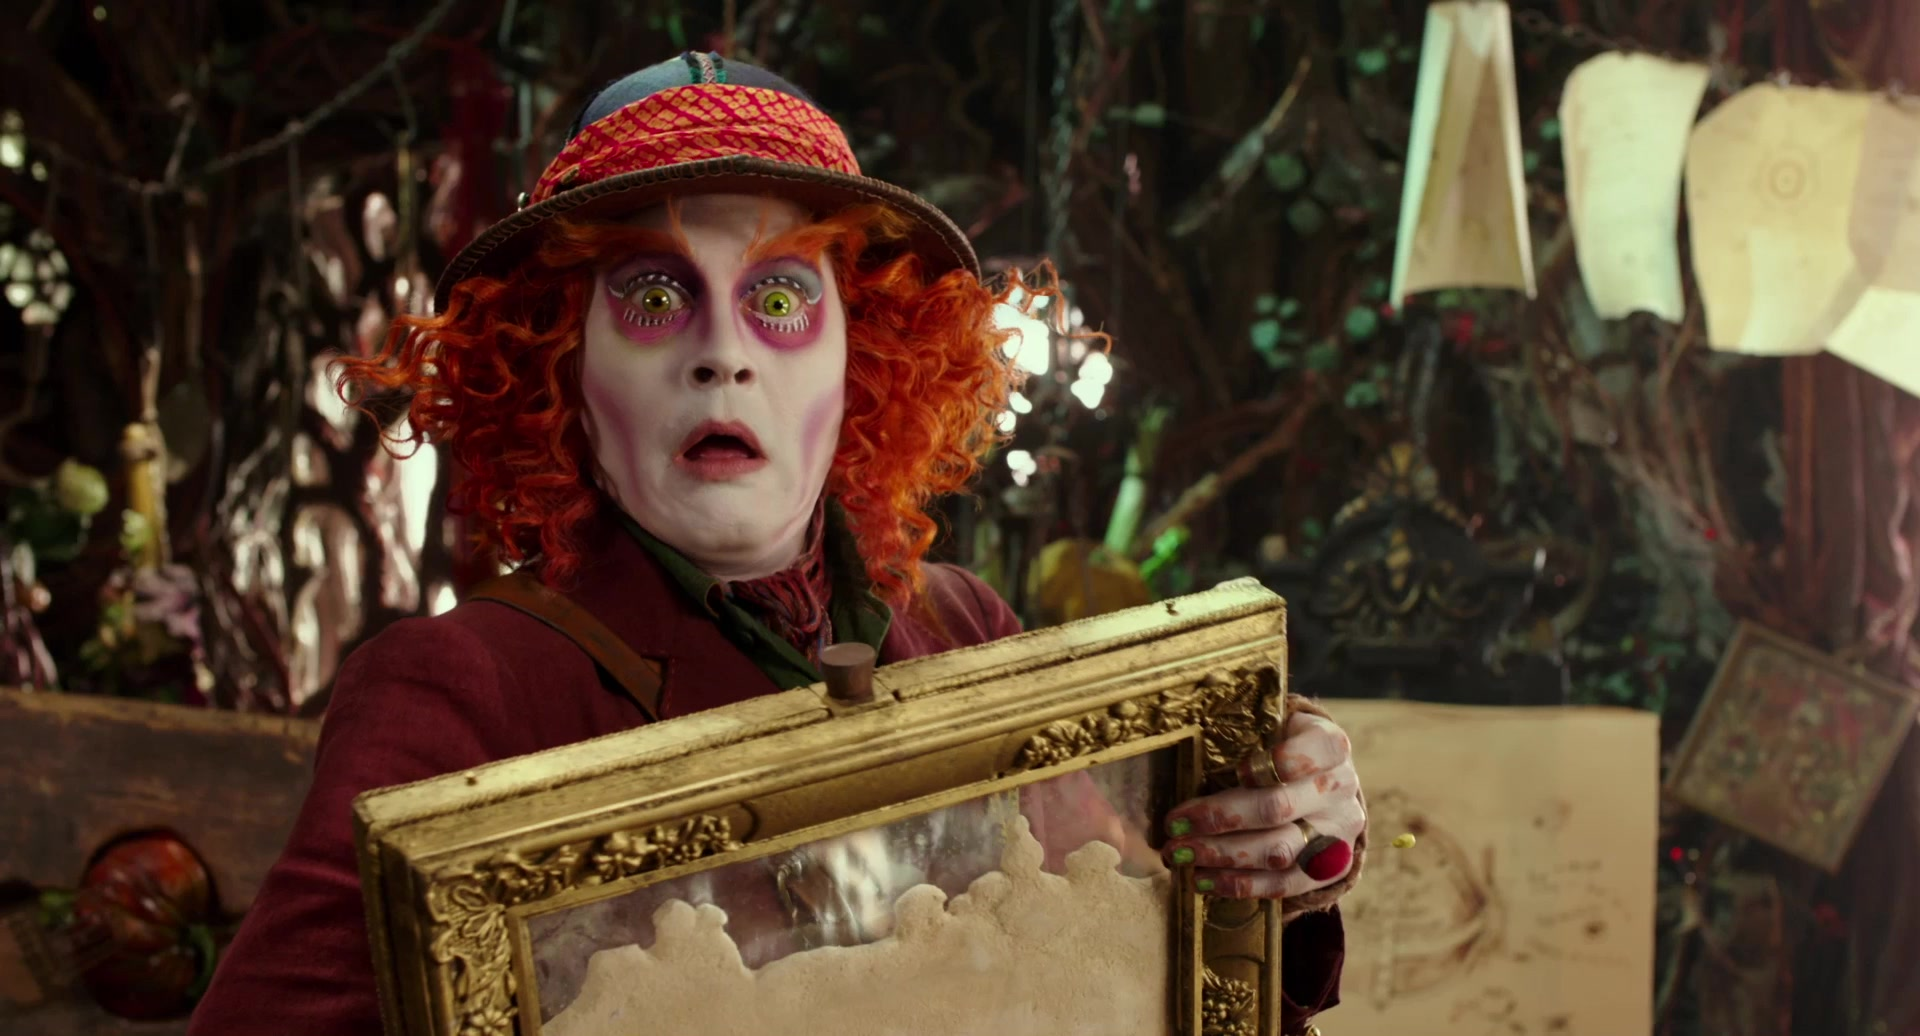 Alice Through the Looking Glass - Teaser Trailer No. 3